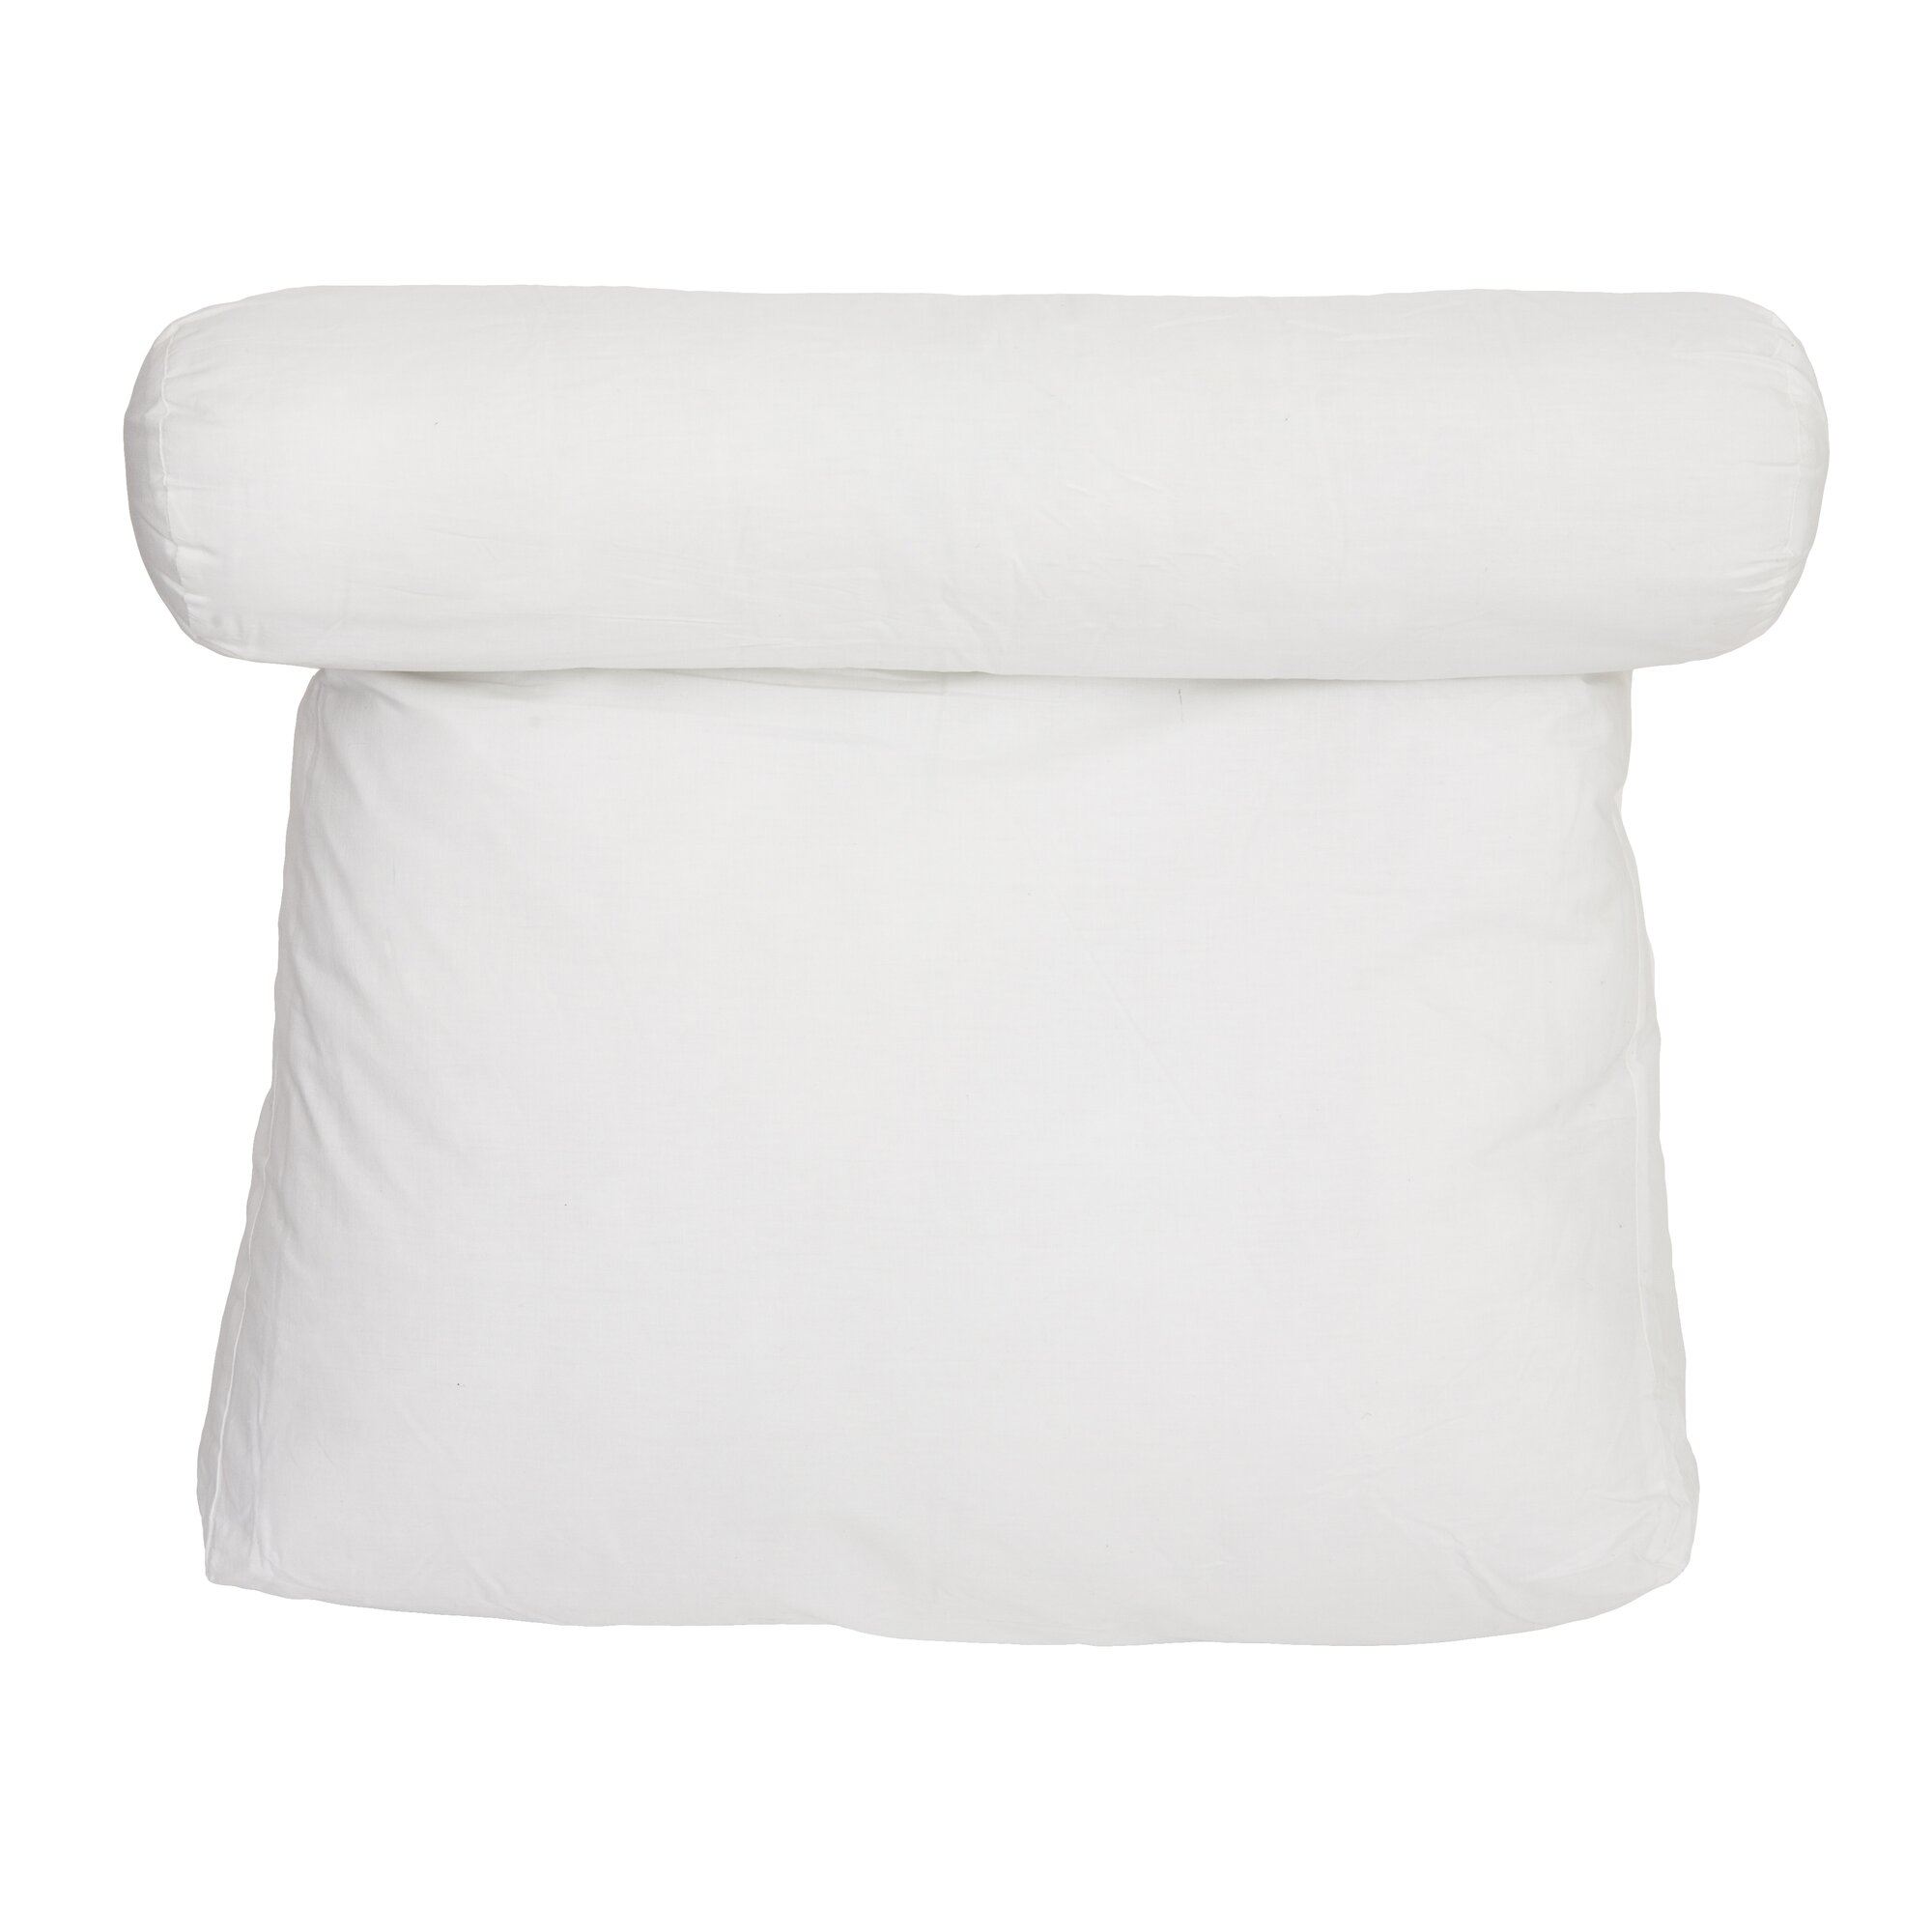 Deluxe Comfort Relax In Bed Down Standard Pillow Reviews